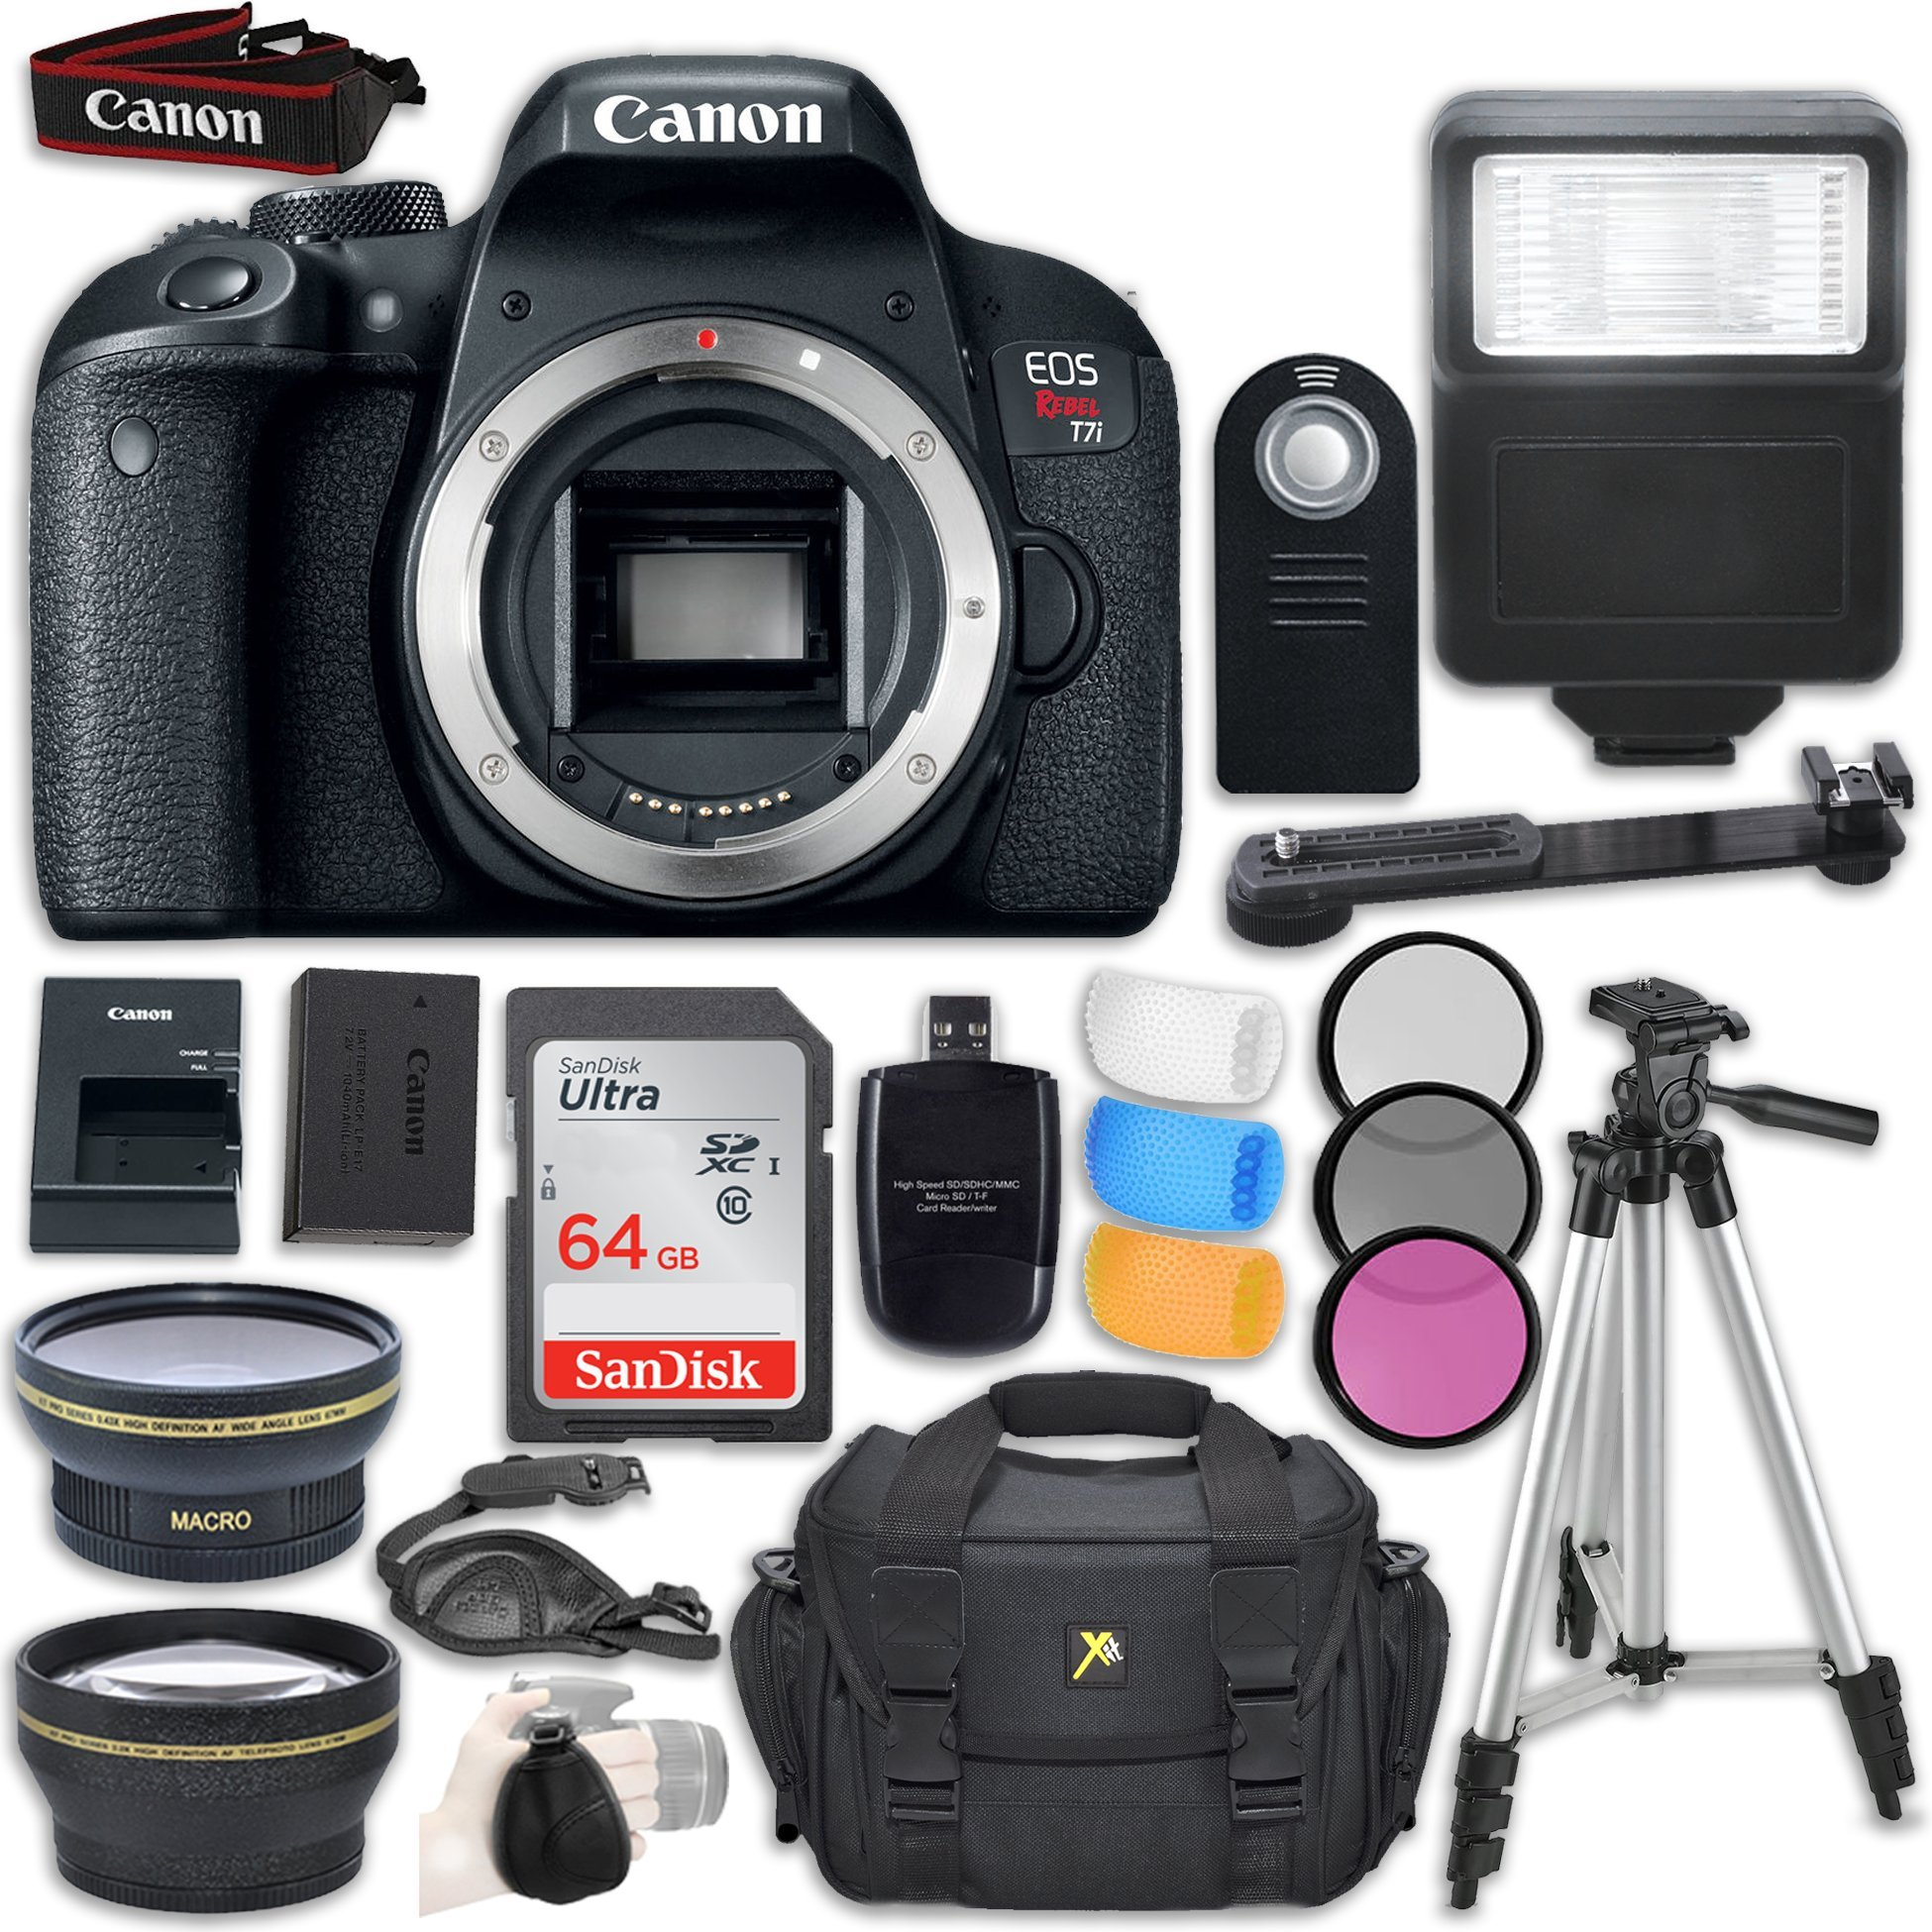 Canon EOS Rebel T7i DSLR Camera (Body Only) + Accessory Bundle